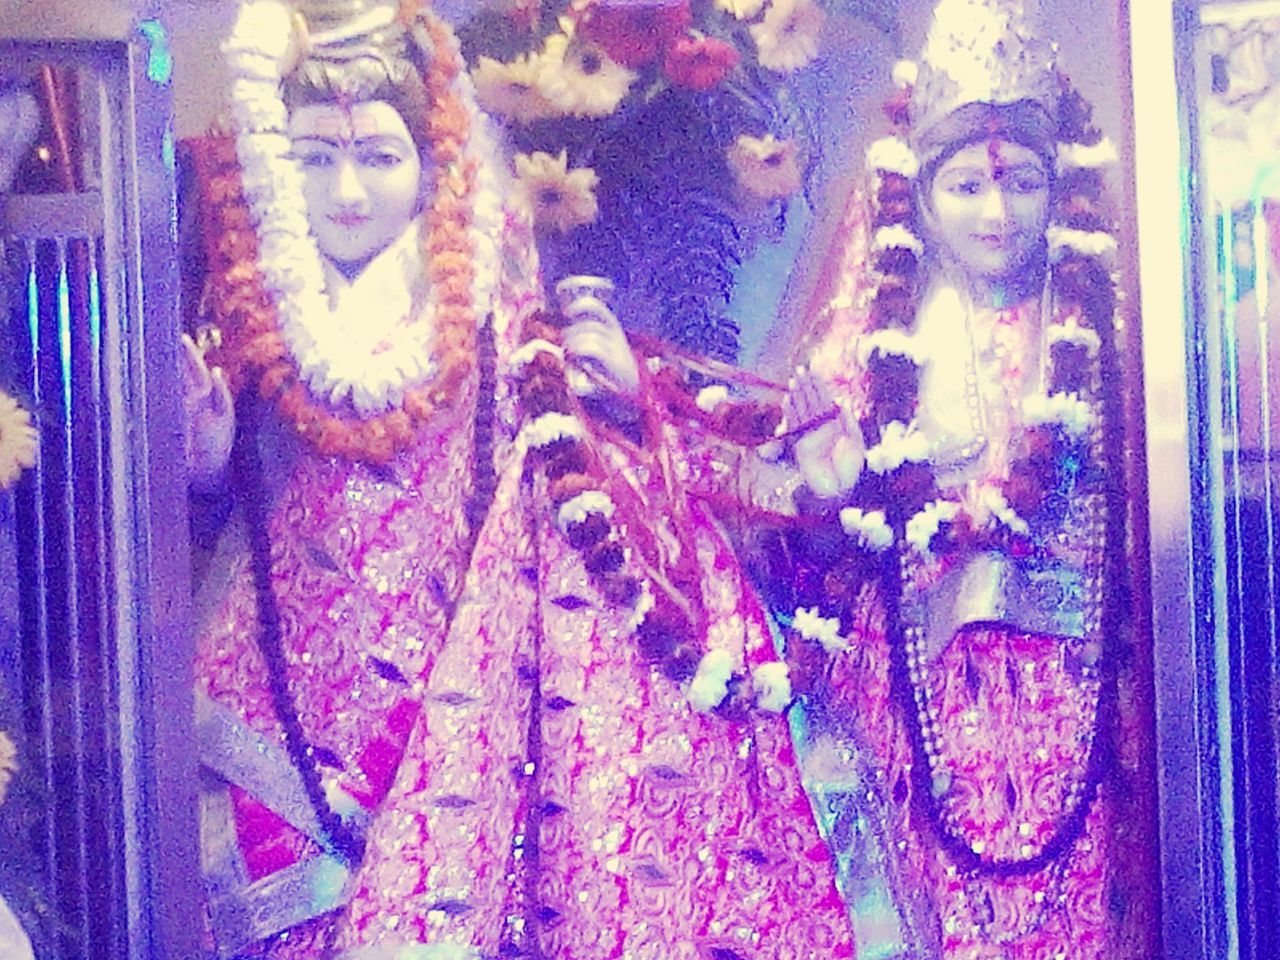 Finally Lord Shiva Goddess Parvati Shivshakti MahaShivRatri or Shivratri is Celebration in the honour of Lord Shiva & Goddess Parvati's (believed to be the Reincarnation of Goddess Shakti ) Wedding hence Traditional Wedding Dress & massive Celebrations . Aum Nama Parvati Patey Hara Hara Mahadev Aum Namah Sivaya